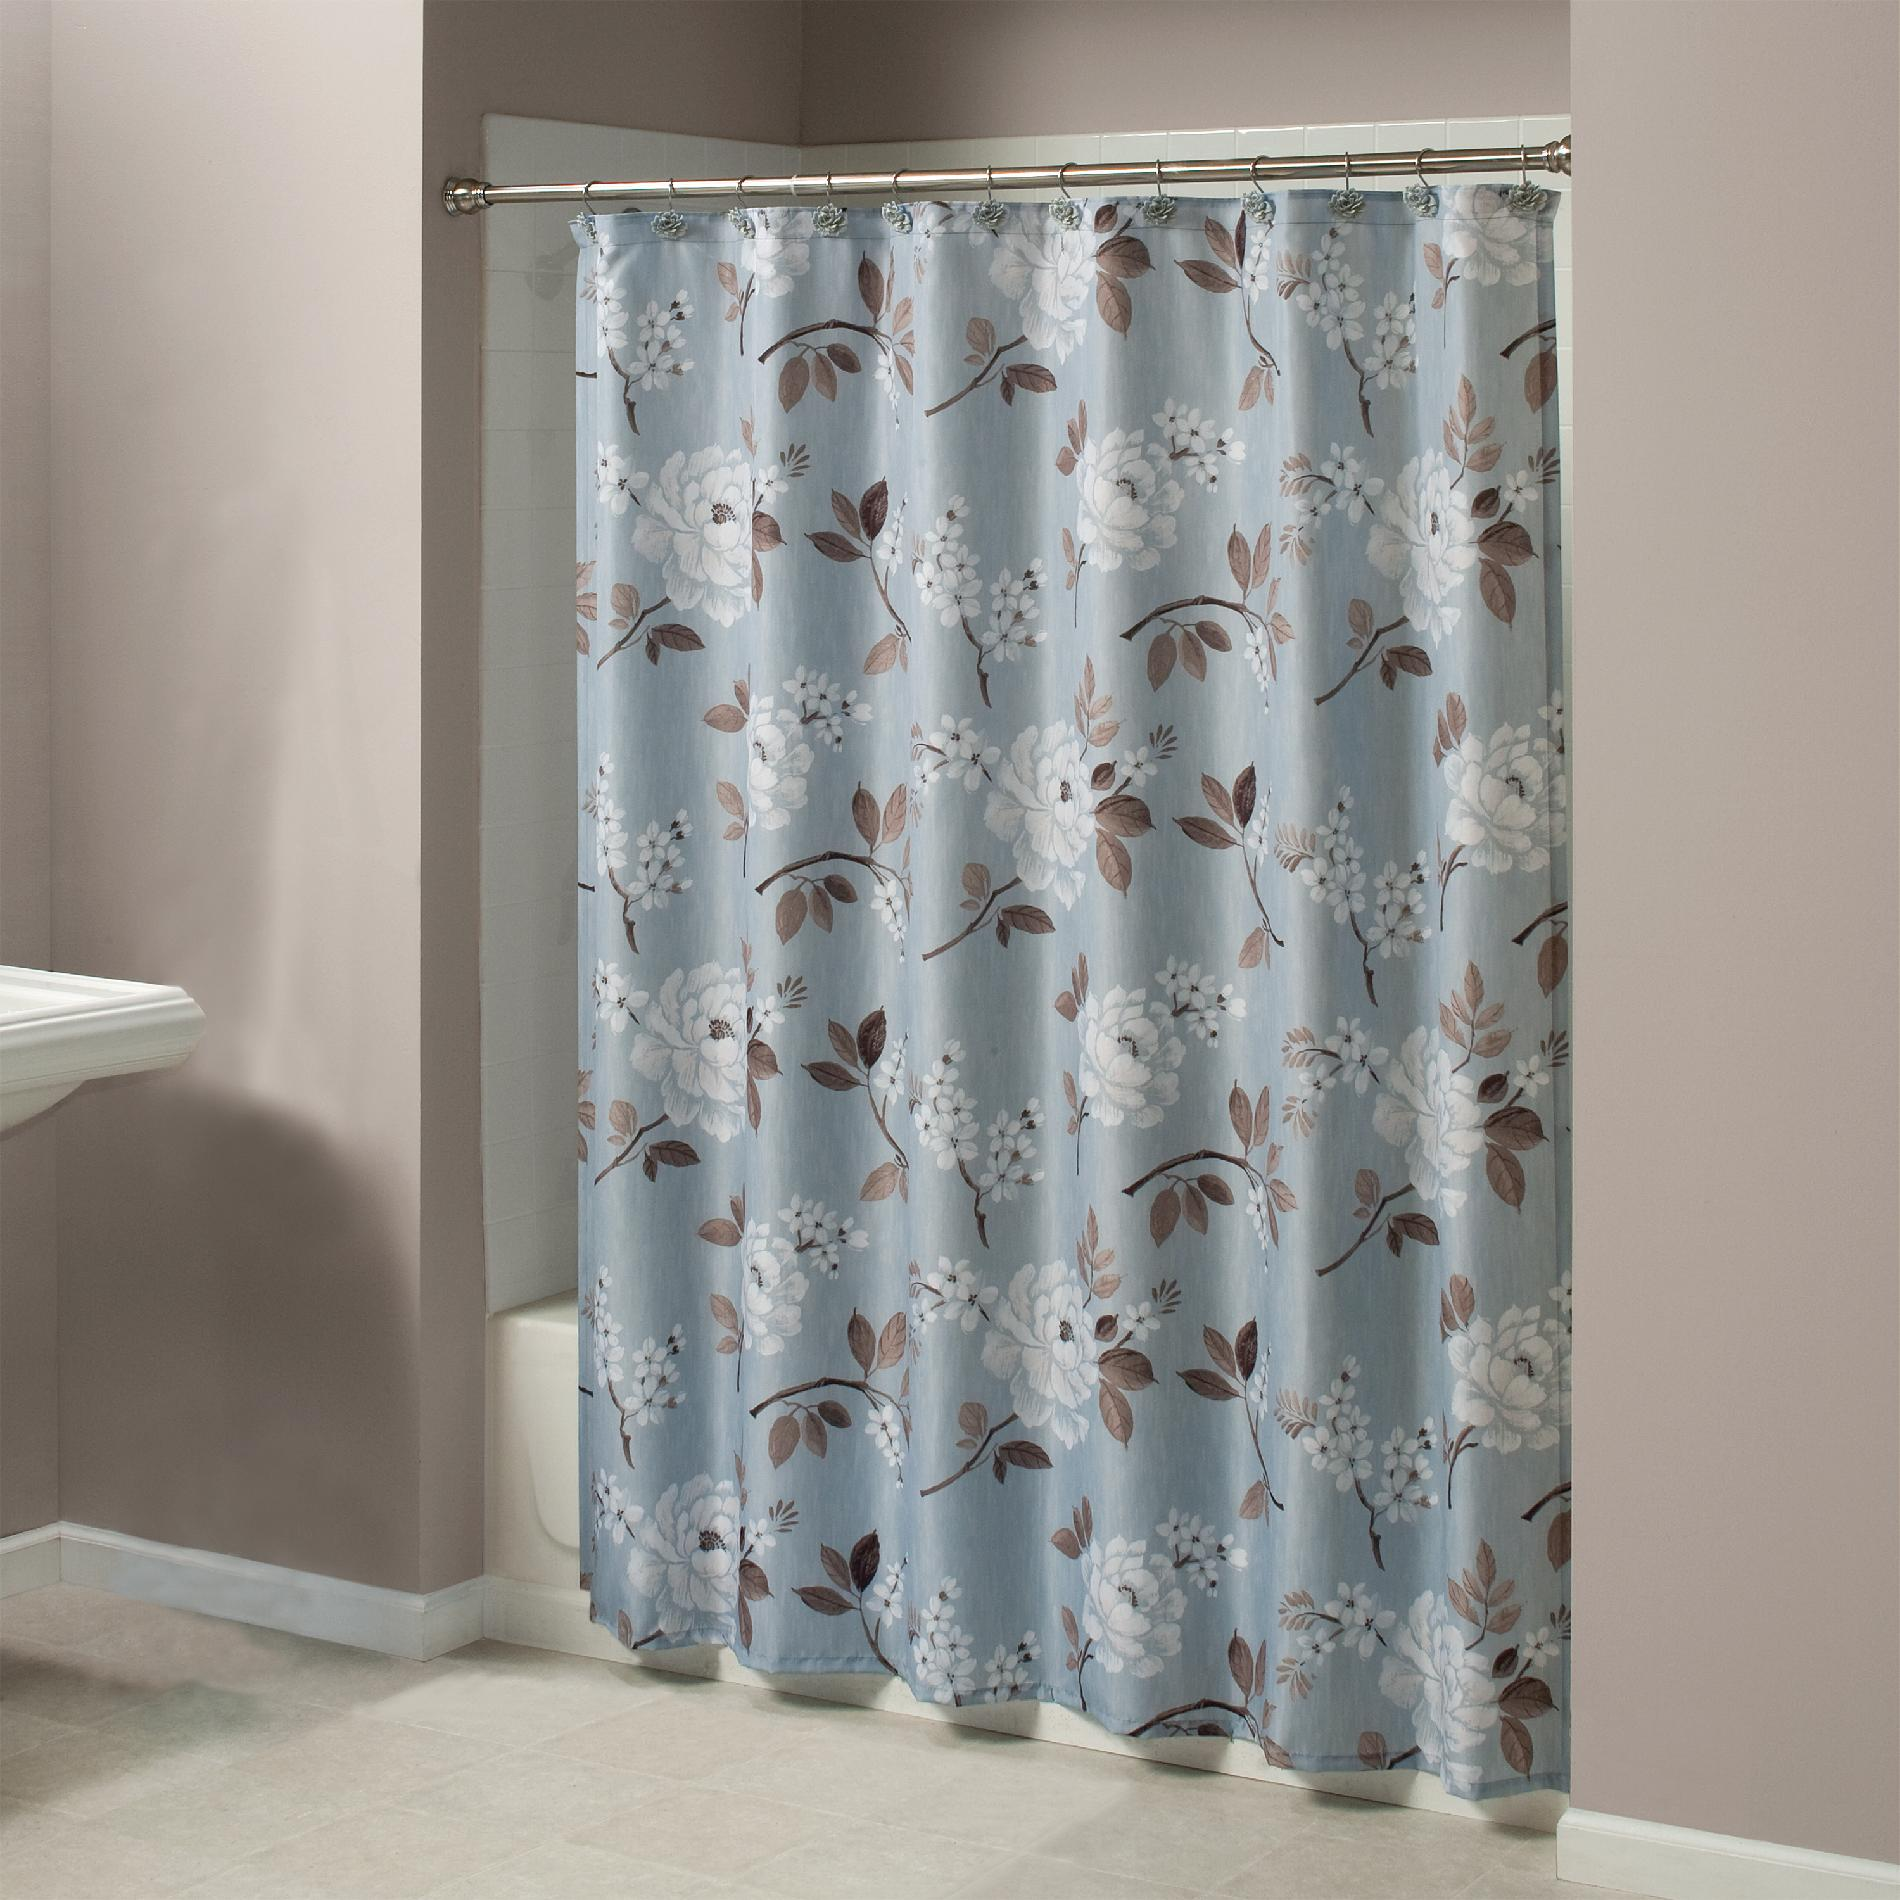 Bathroom Shower Curtains And Accessories Essential Home Shower Curtain Whisper It Fabric Curtain